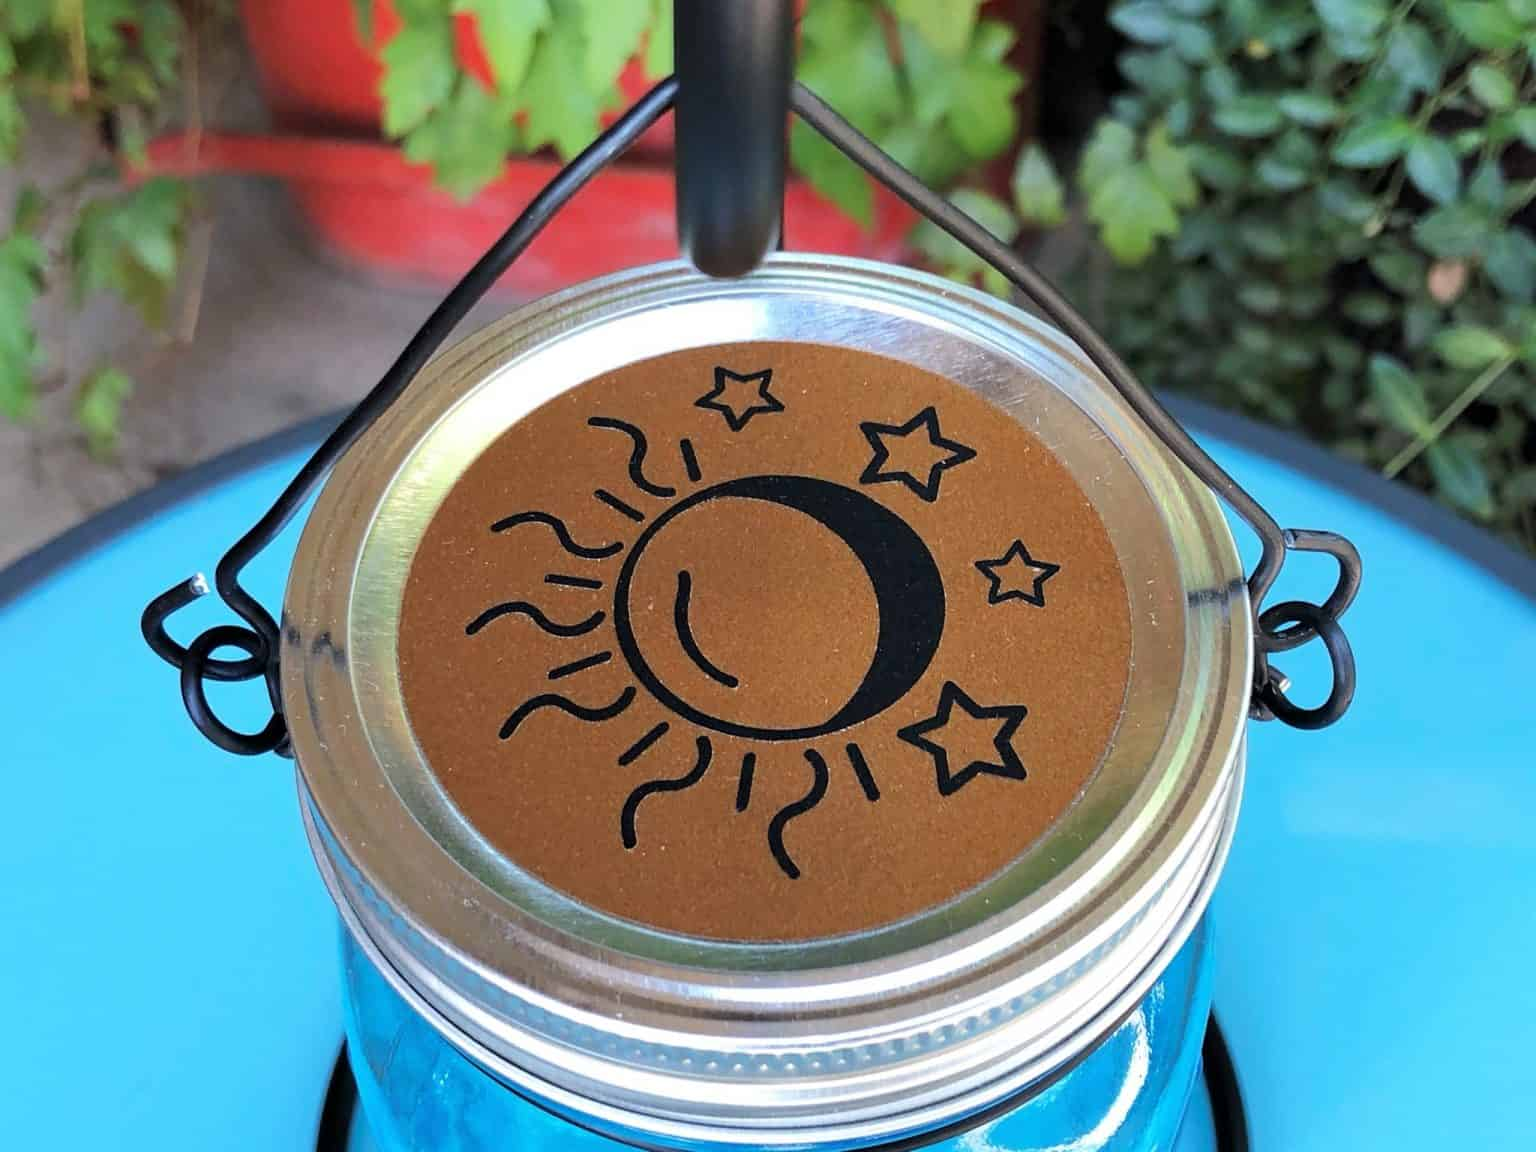 close up picture of wire hanger with sun and moon file in vinyl on the lid